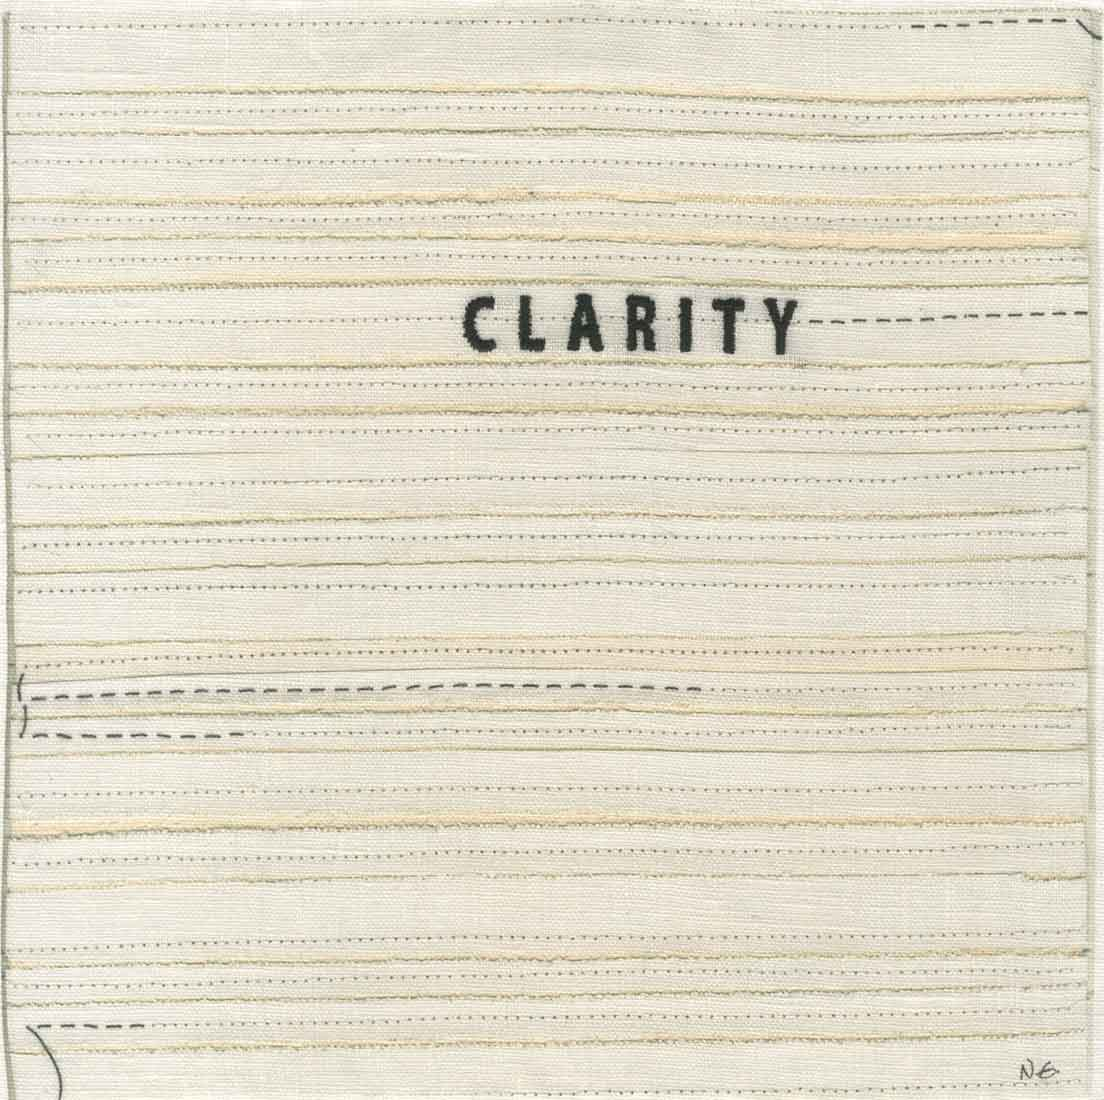 "clarity (embroidery), 6"" x 6"" x ¾,"" Nan Genger, 2016"